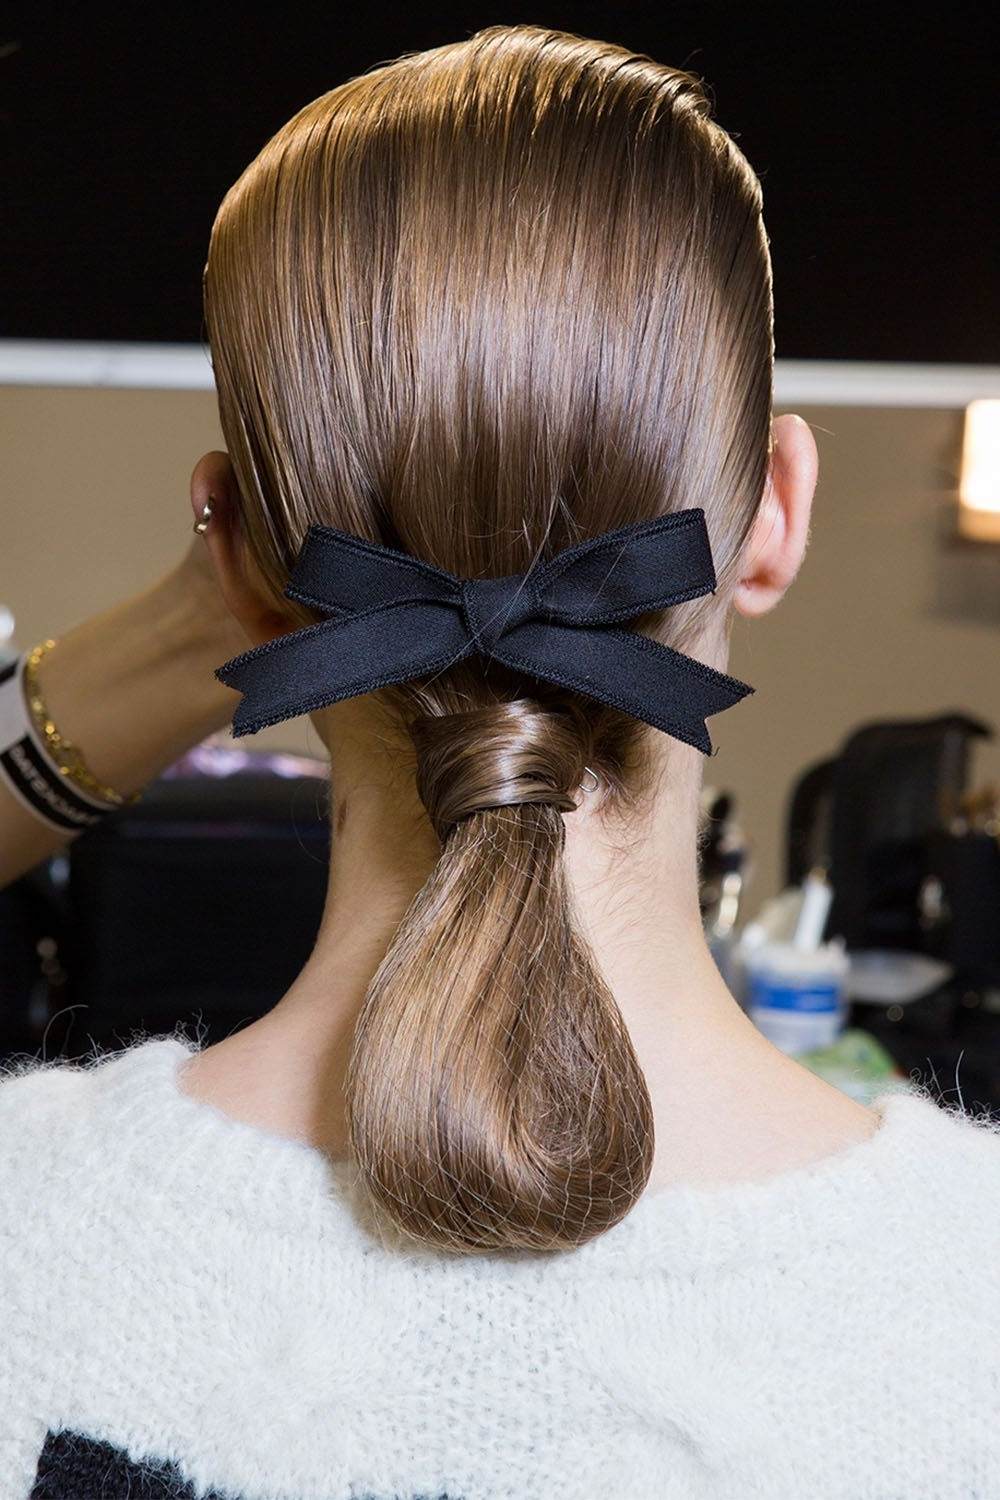 Fall 2017 Hair Trends – Best Hairstyles For Autumn 2017 In Latest Hot High Rebellious Ponytail Hairstyles (View 18 of 20)